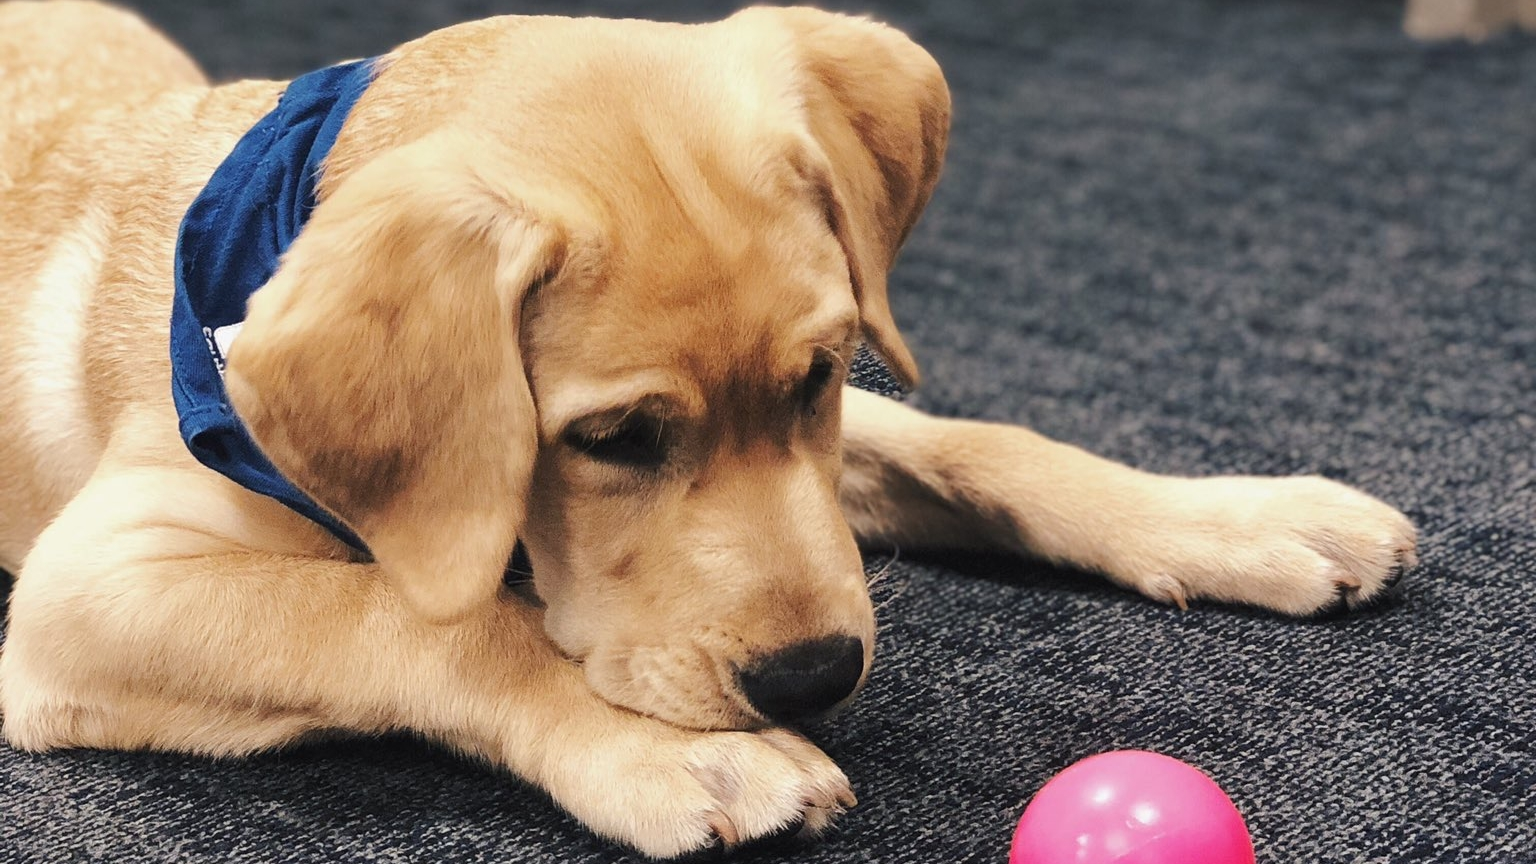 The Lightning's new pup is more than just a photo op prop